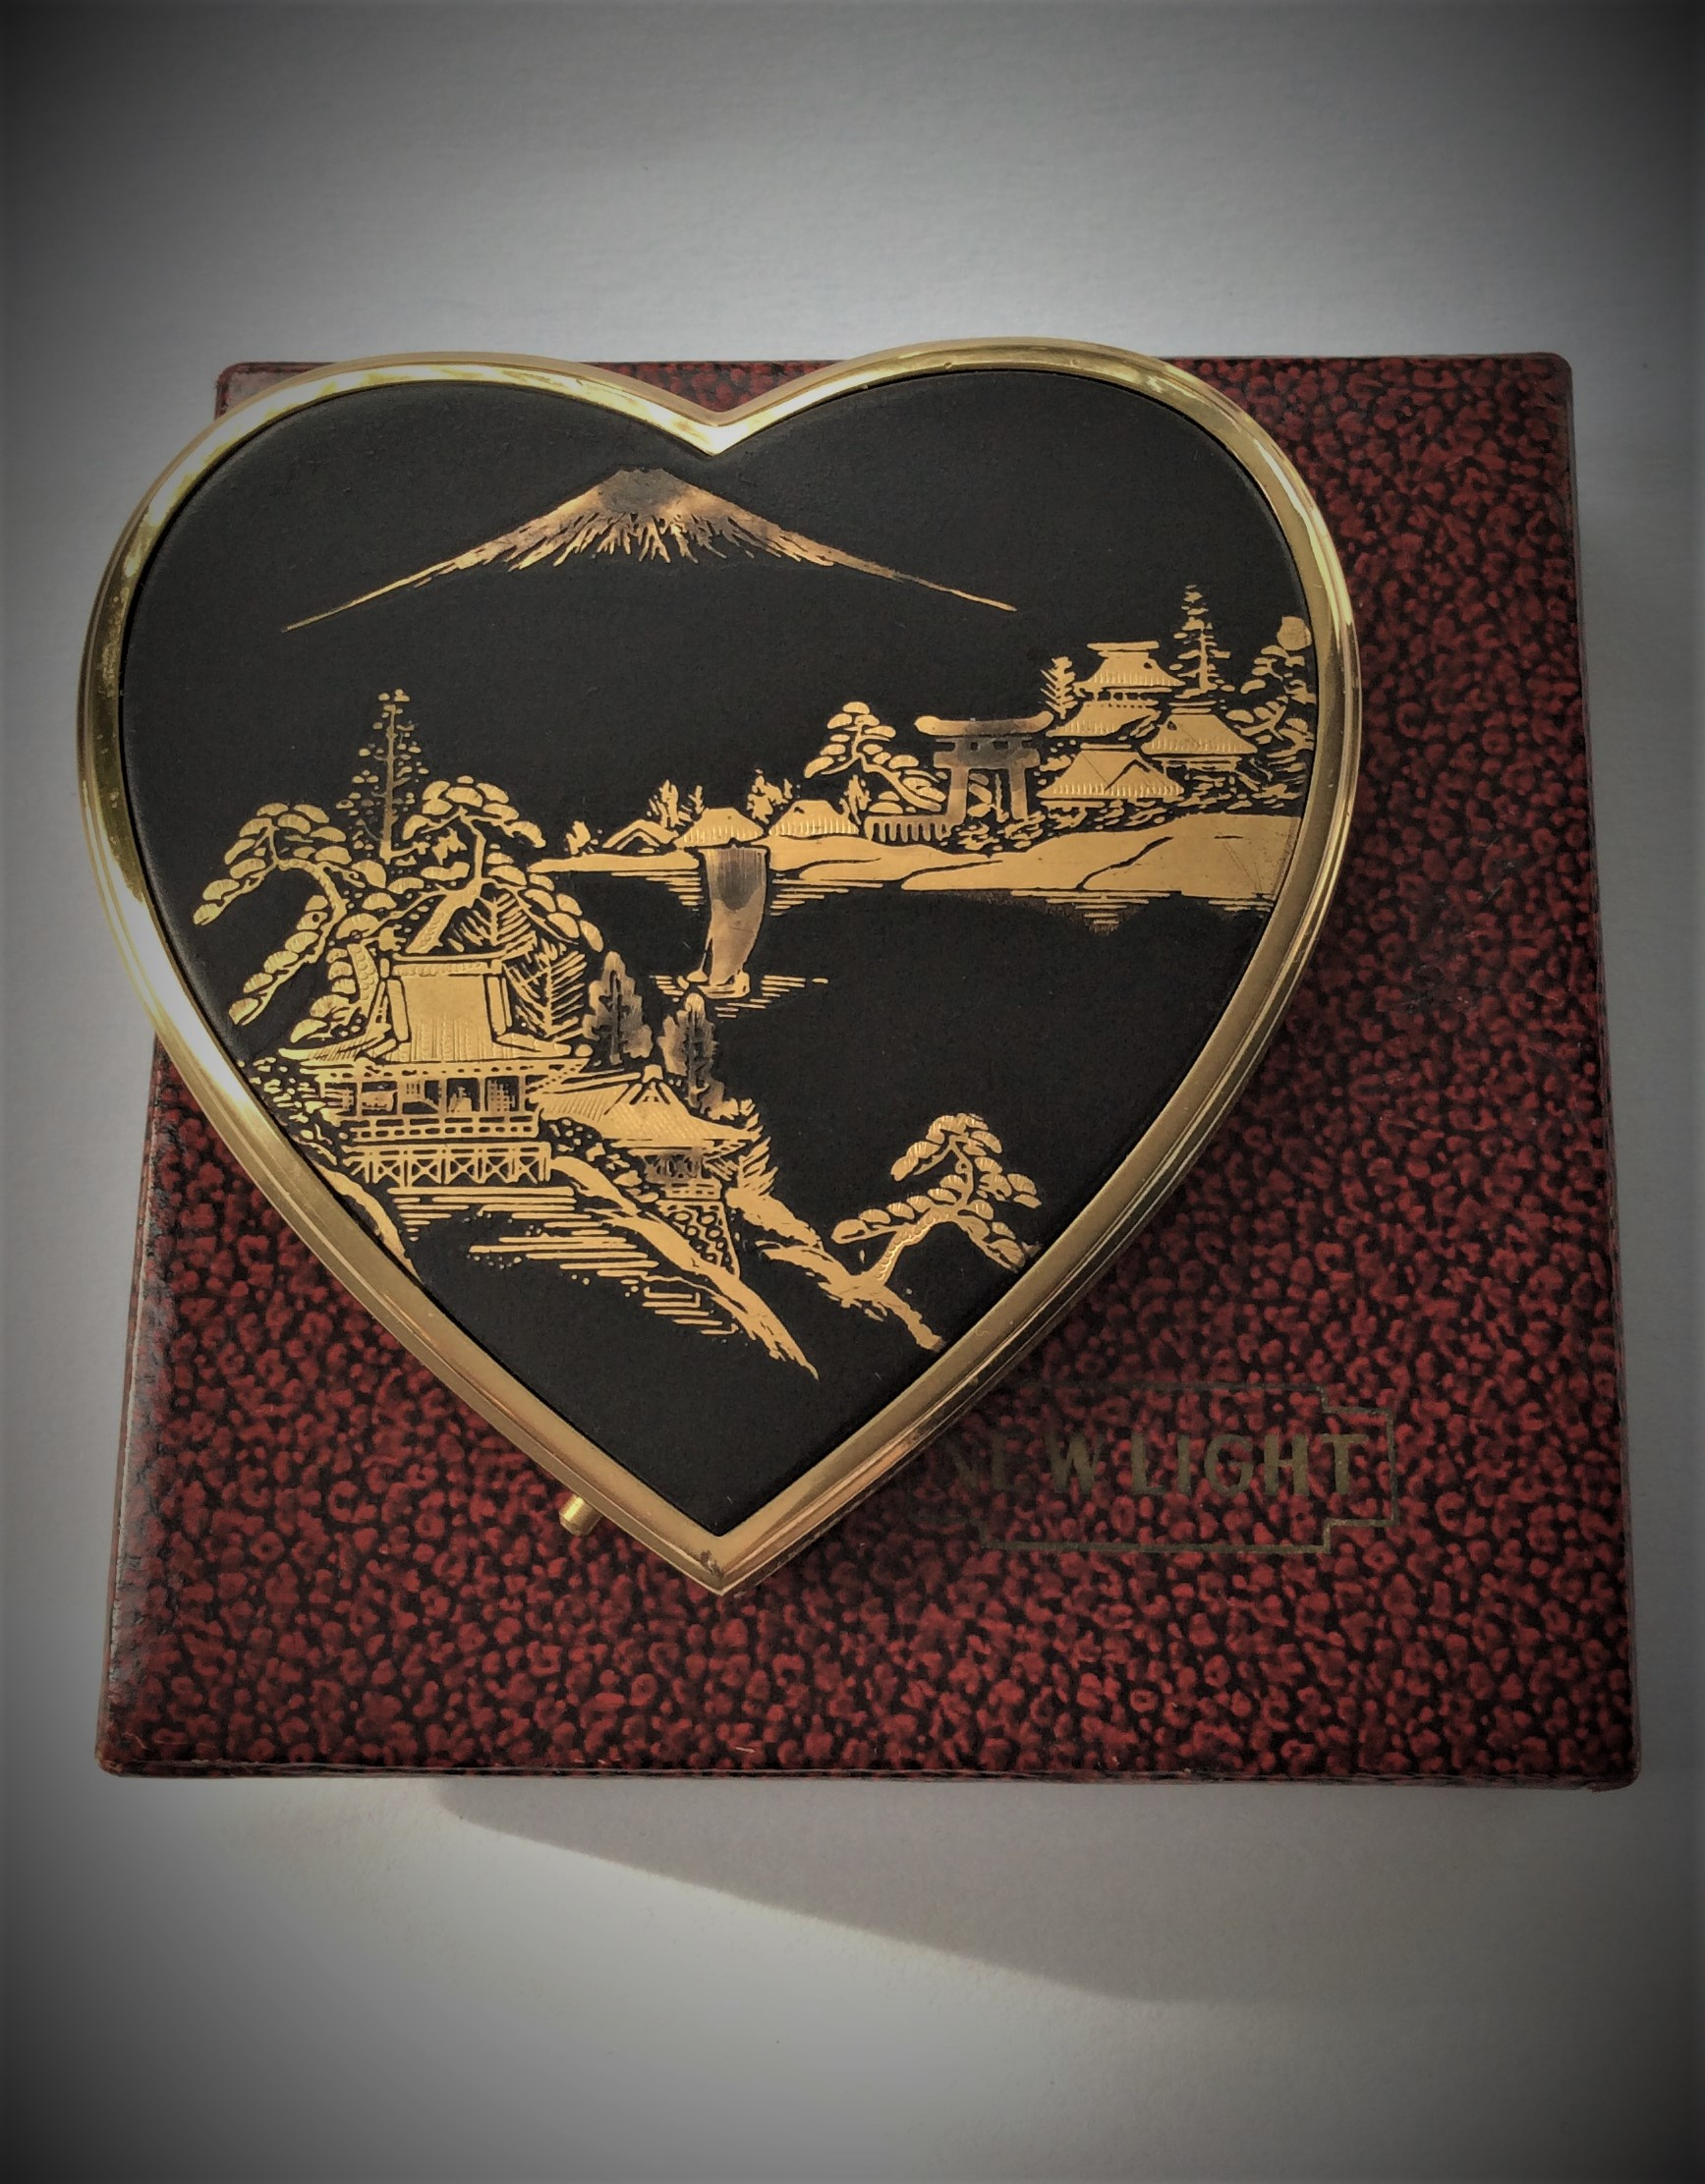 50s NEW LIGHT Unused Vintage Japanese Komai Damascene Heart Shaped Powder Compact with original box and pouch